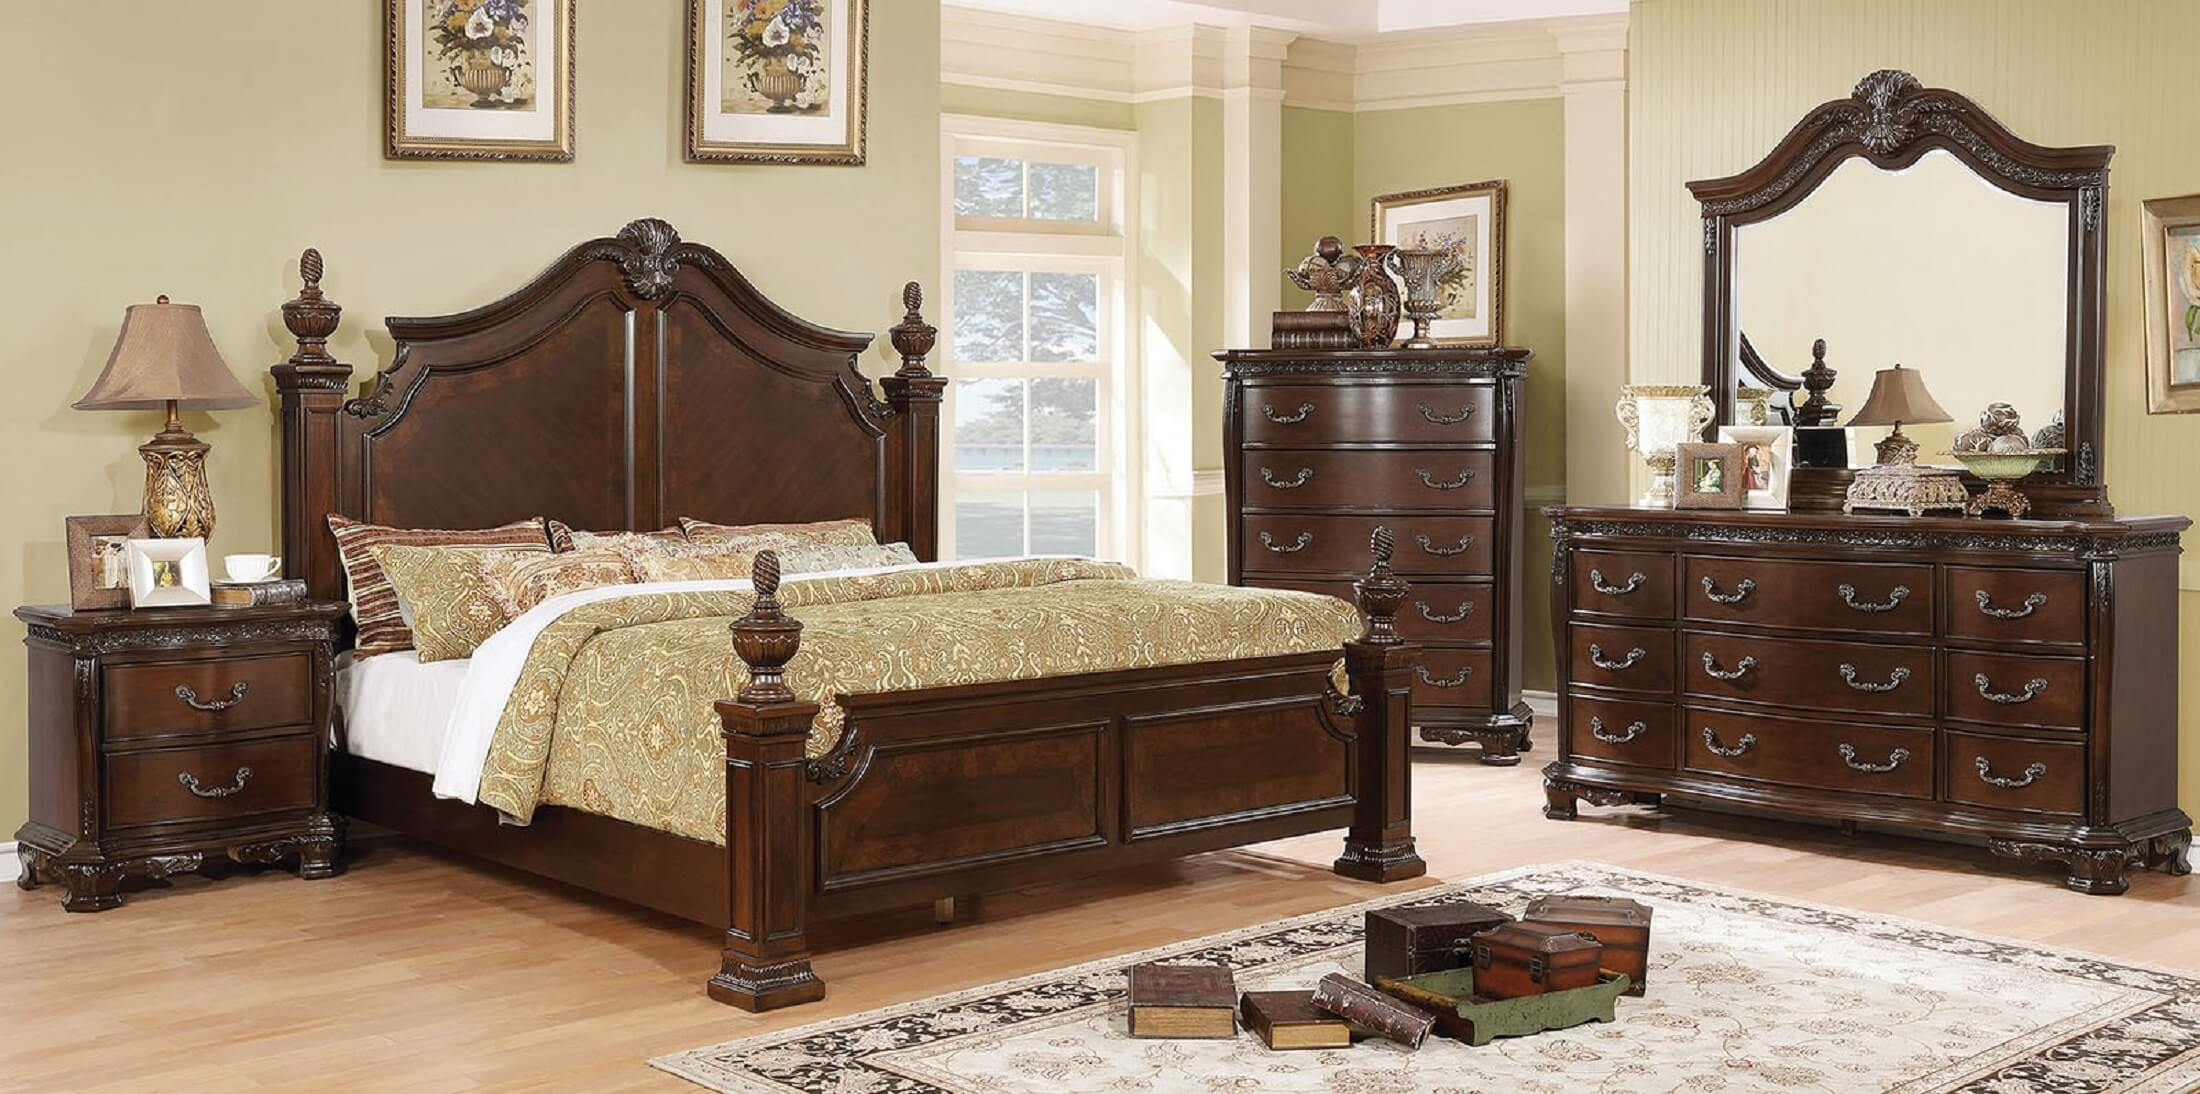 Beau 4 Piece Hesperos Brown Finish Traditional Bedroom Set